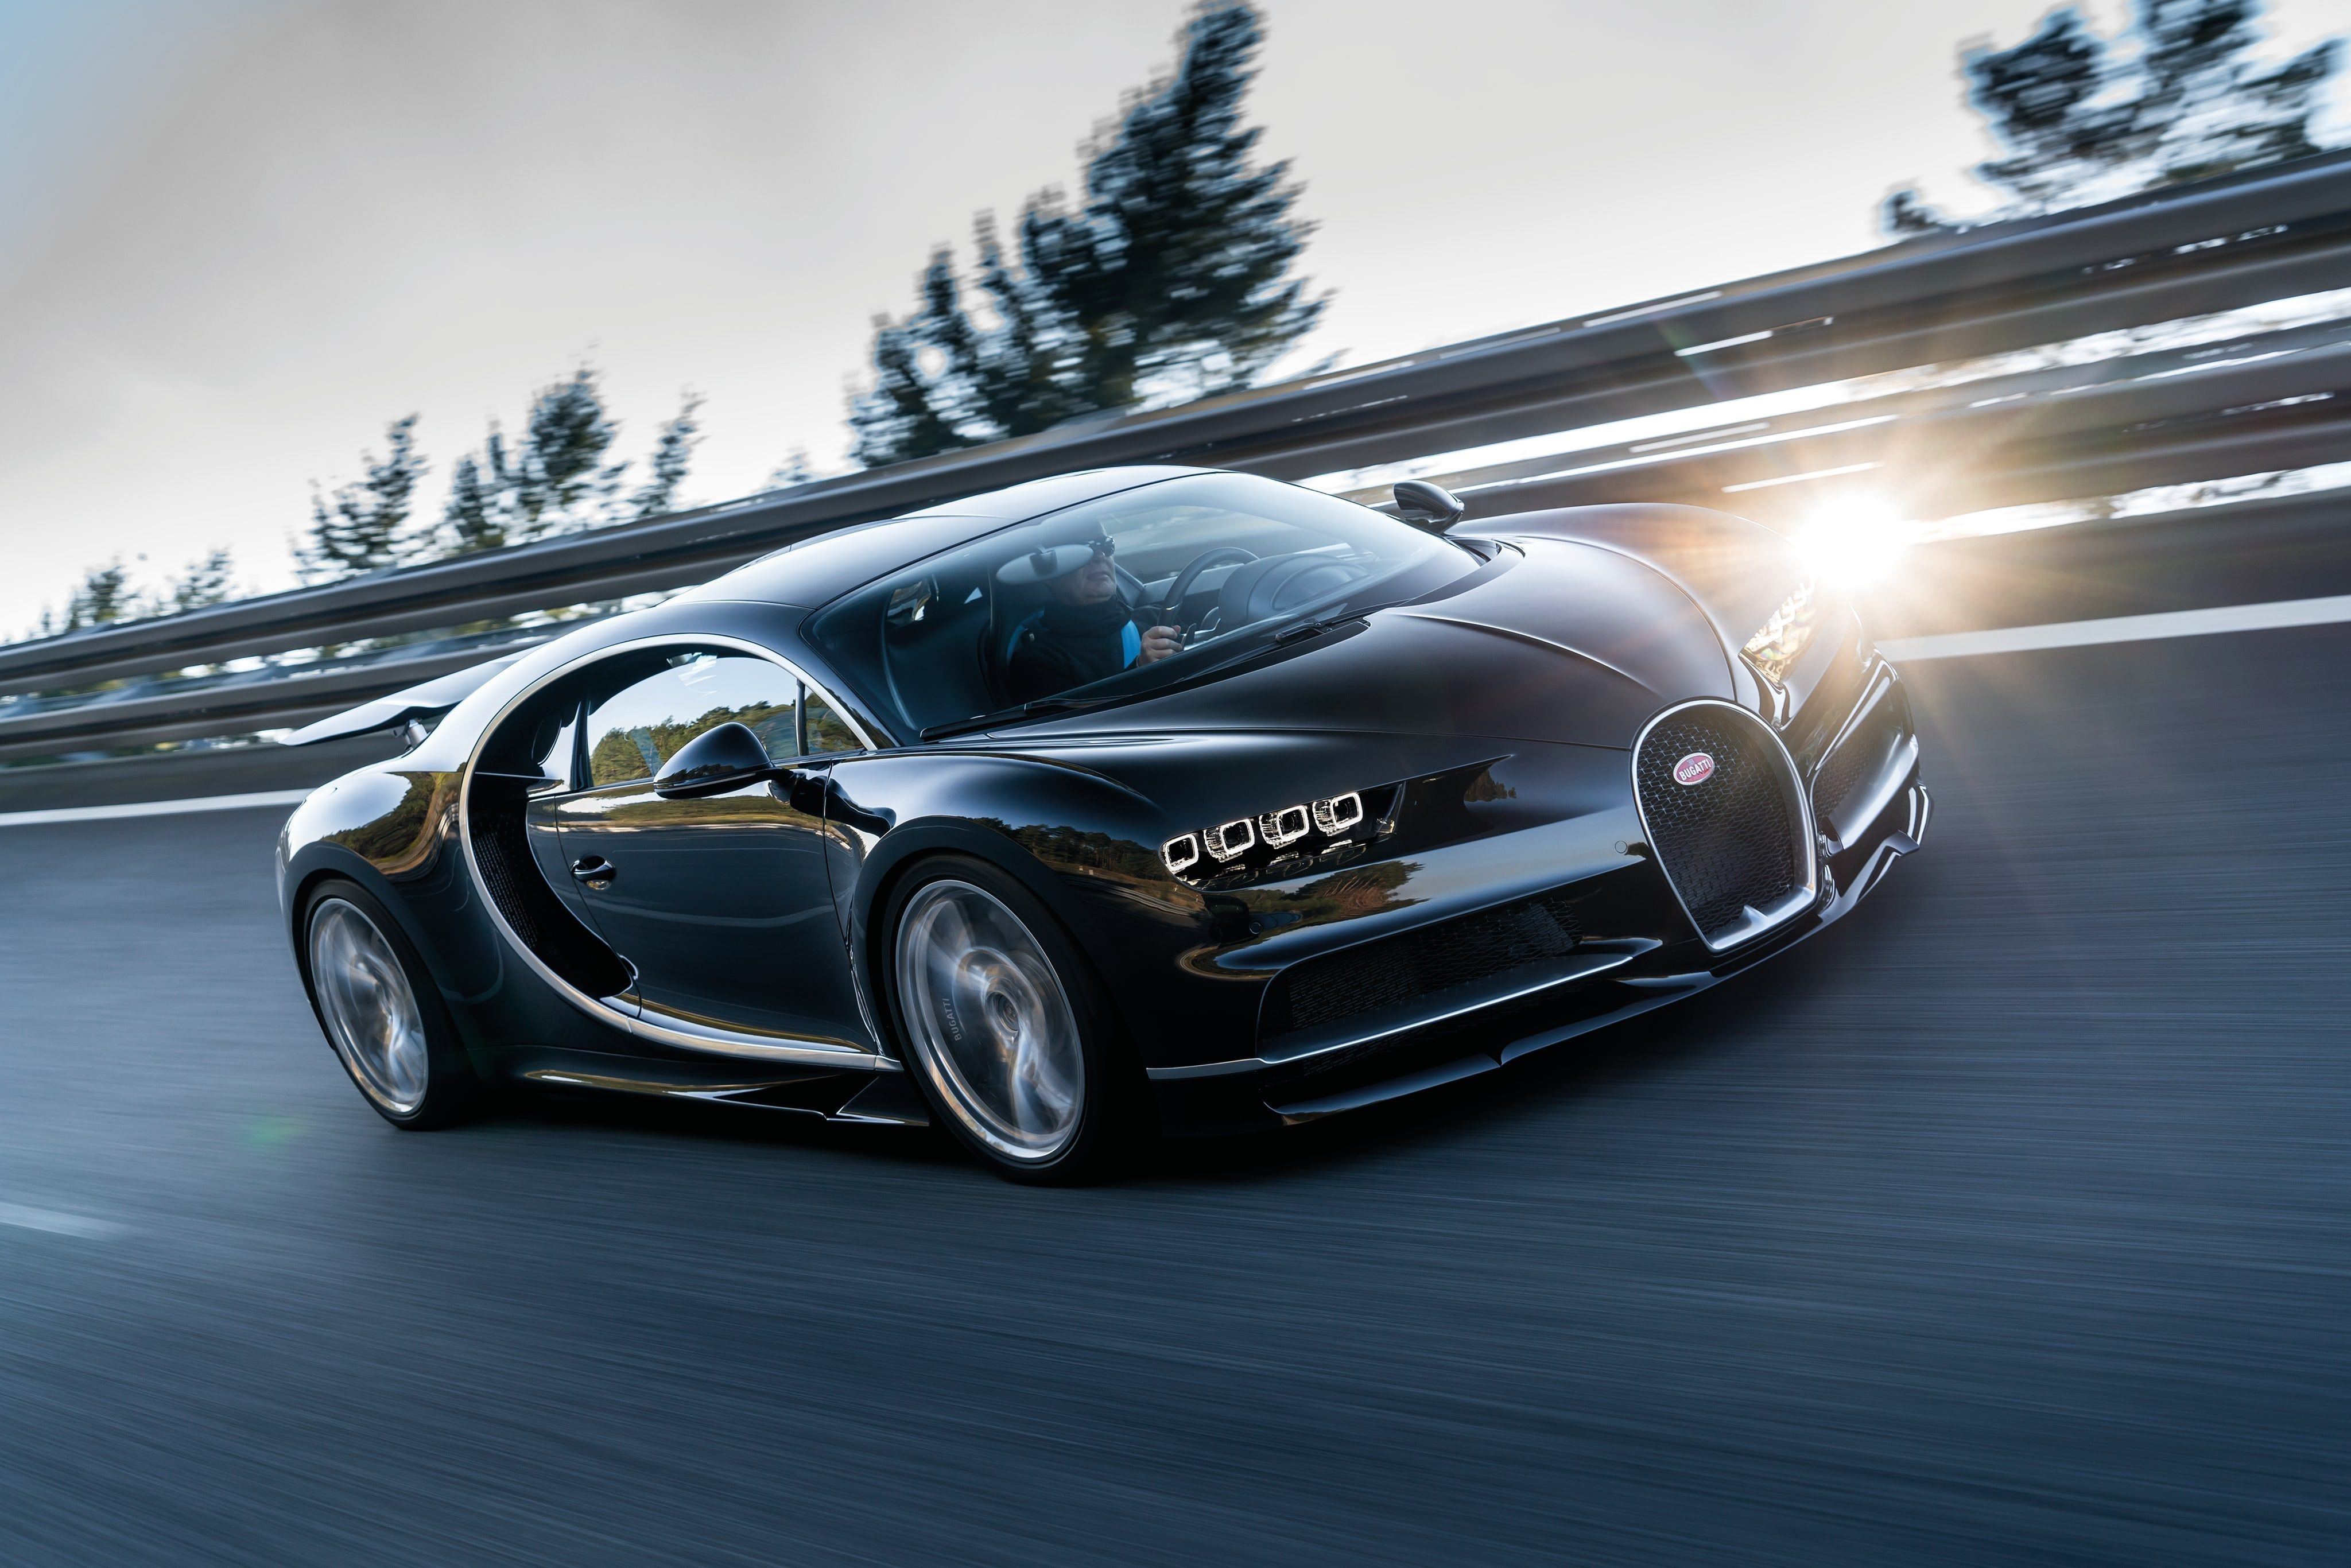 Bugatti Iphone Wallpaper Wallpaper Download High Resolution 4k Wallpaper